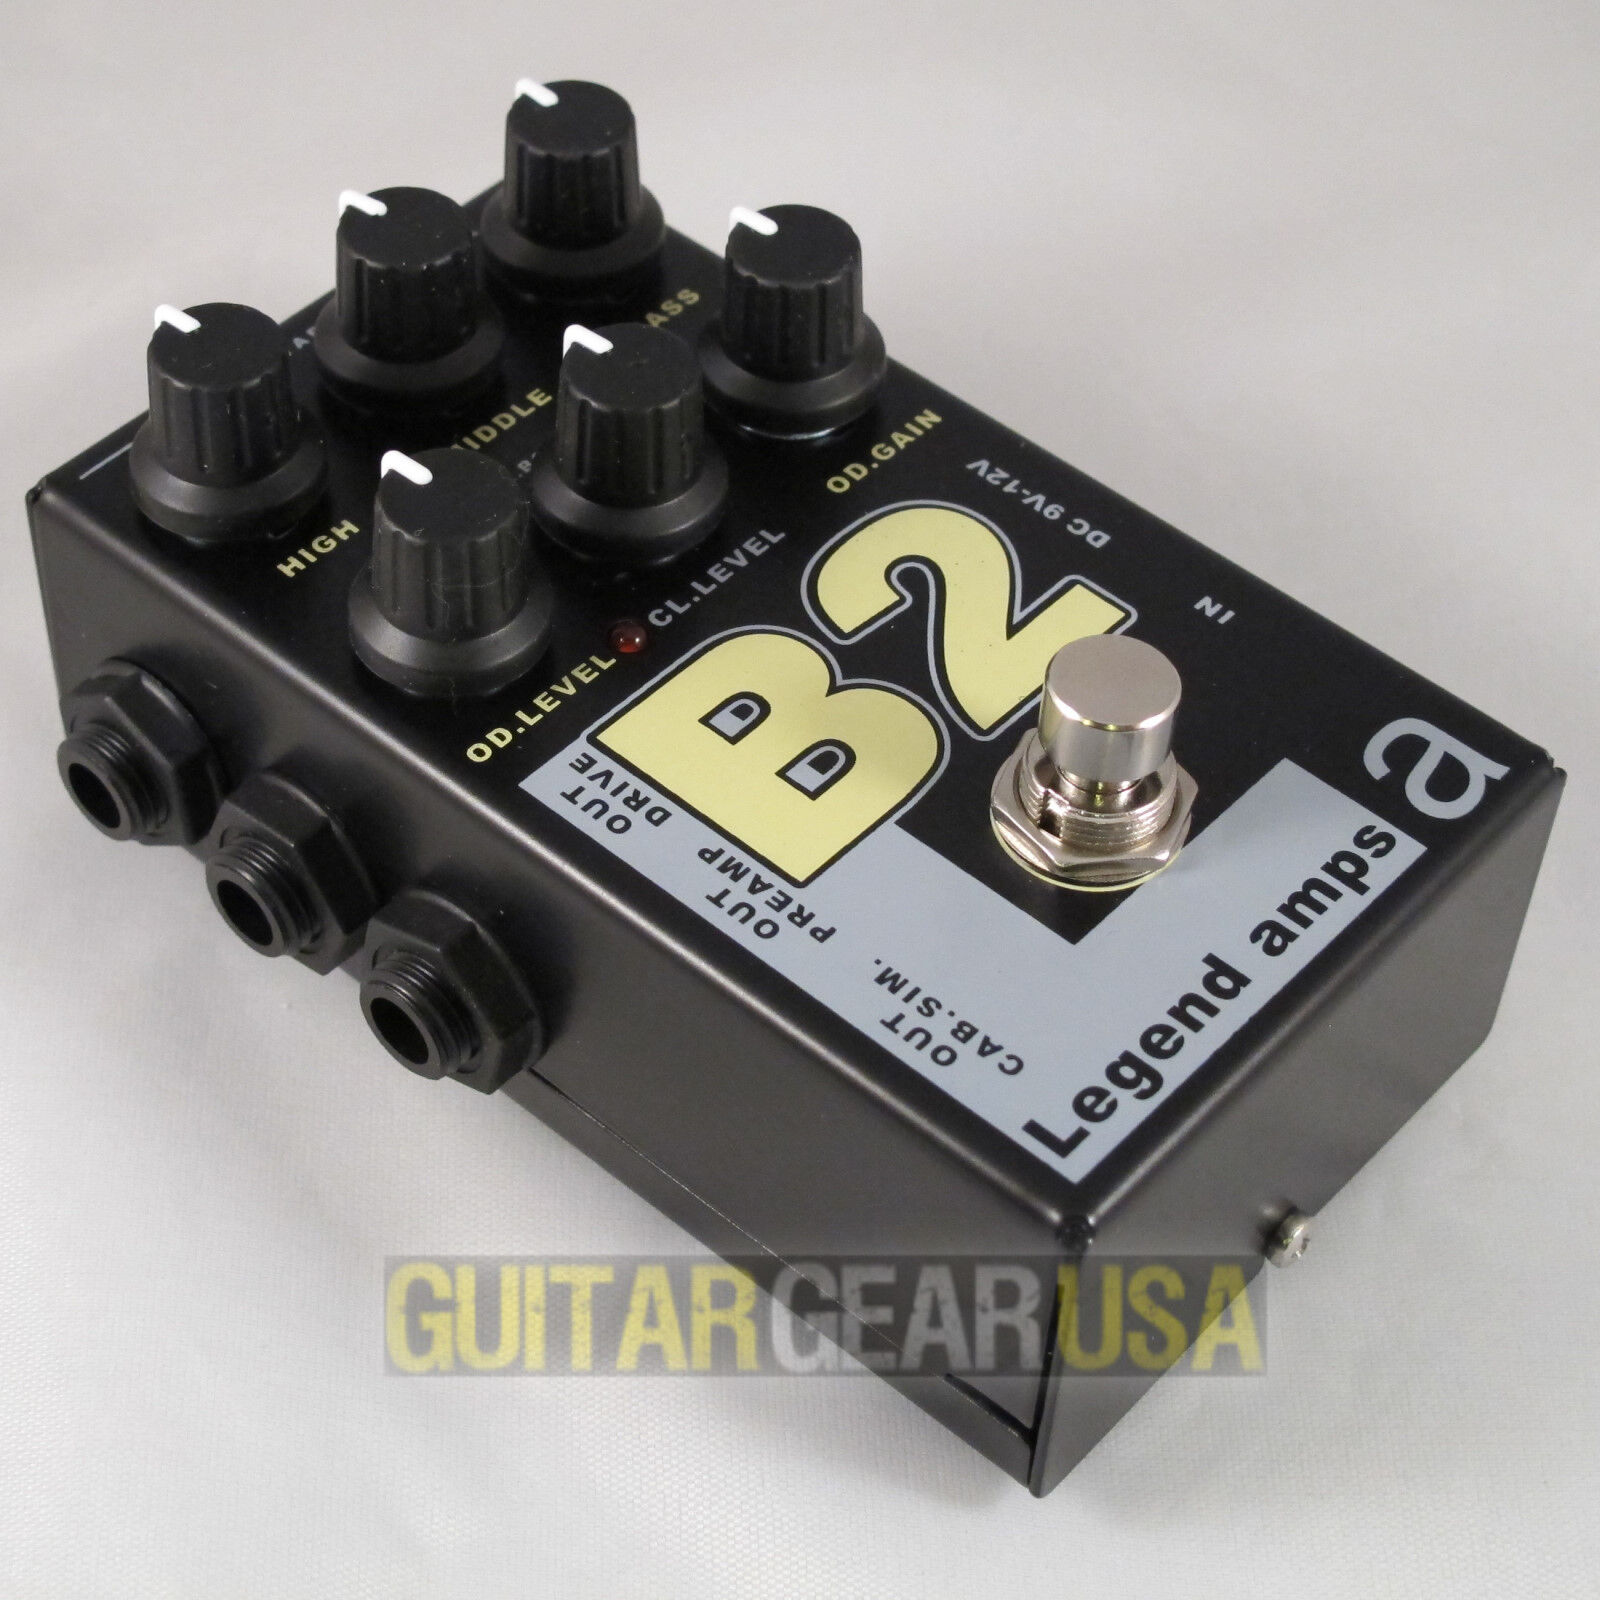 AMT Electronics Guitar Preamp B-2 (Legend Amp Series 2) emulates Bogner Sharp